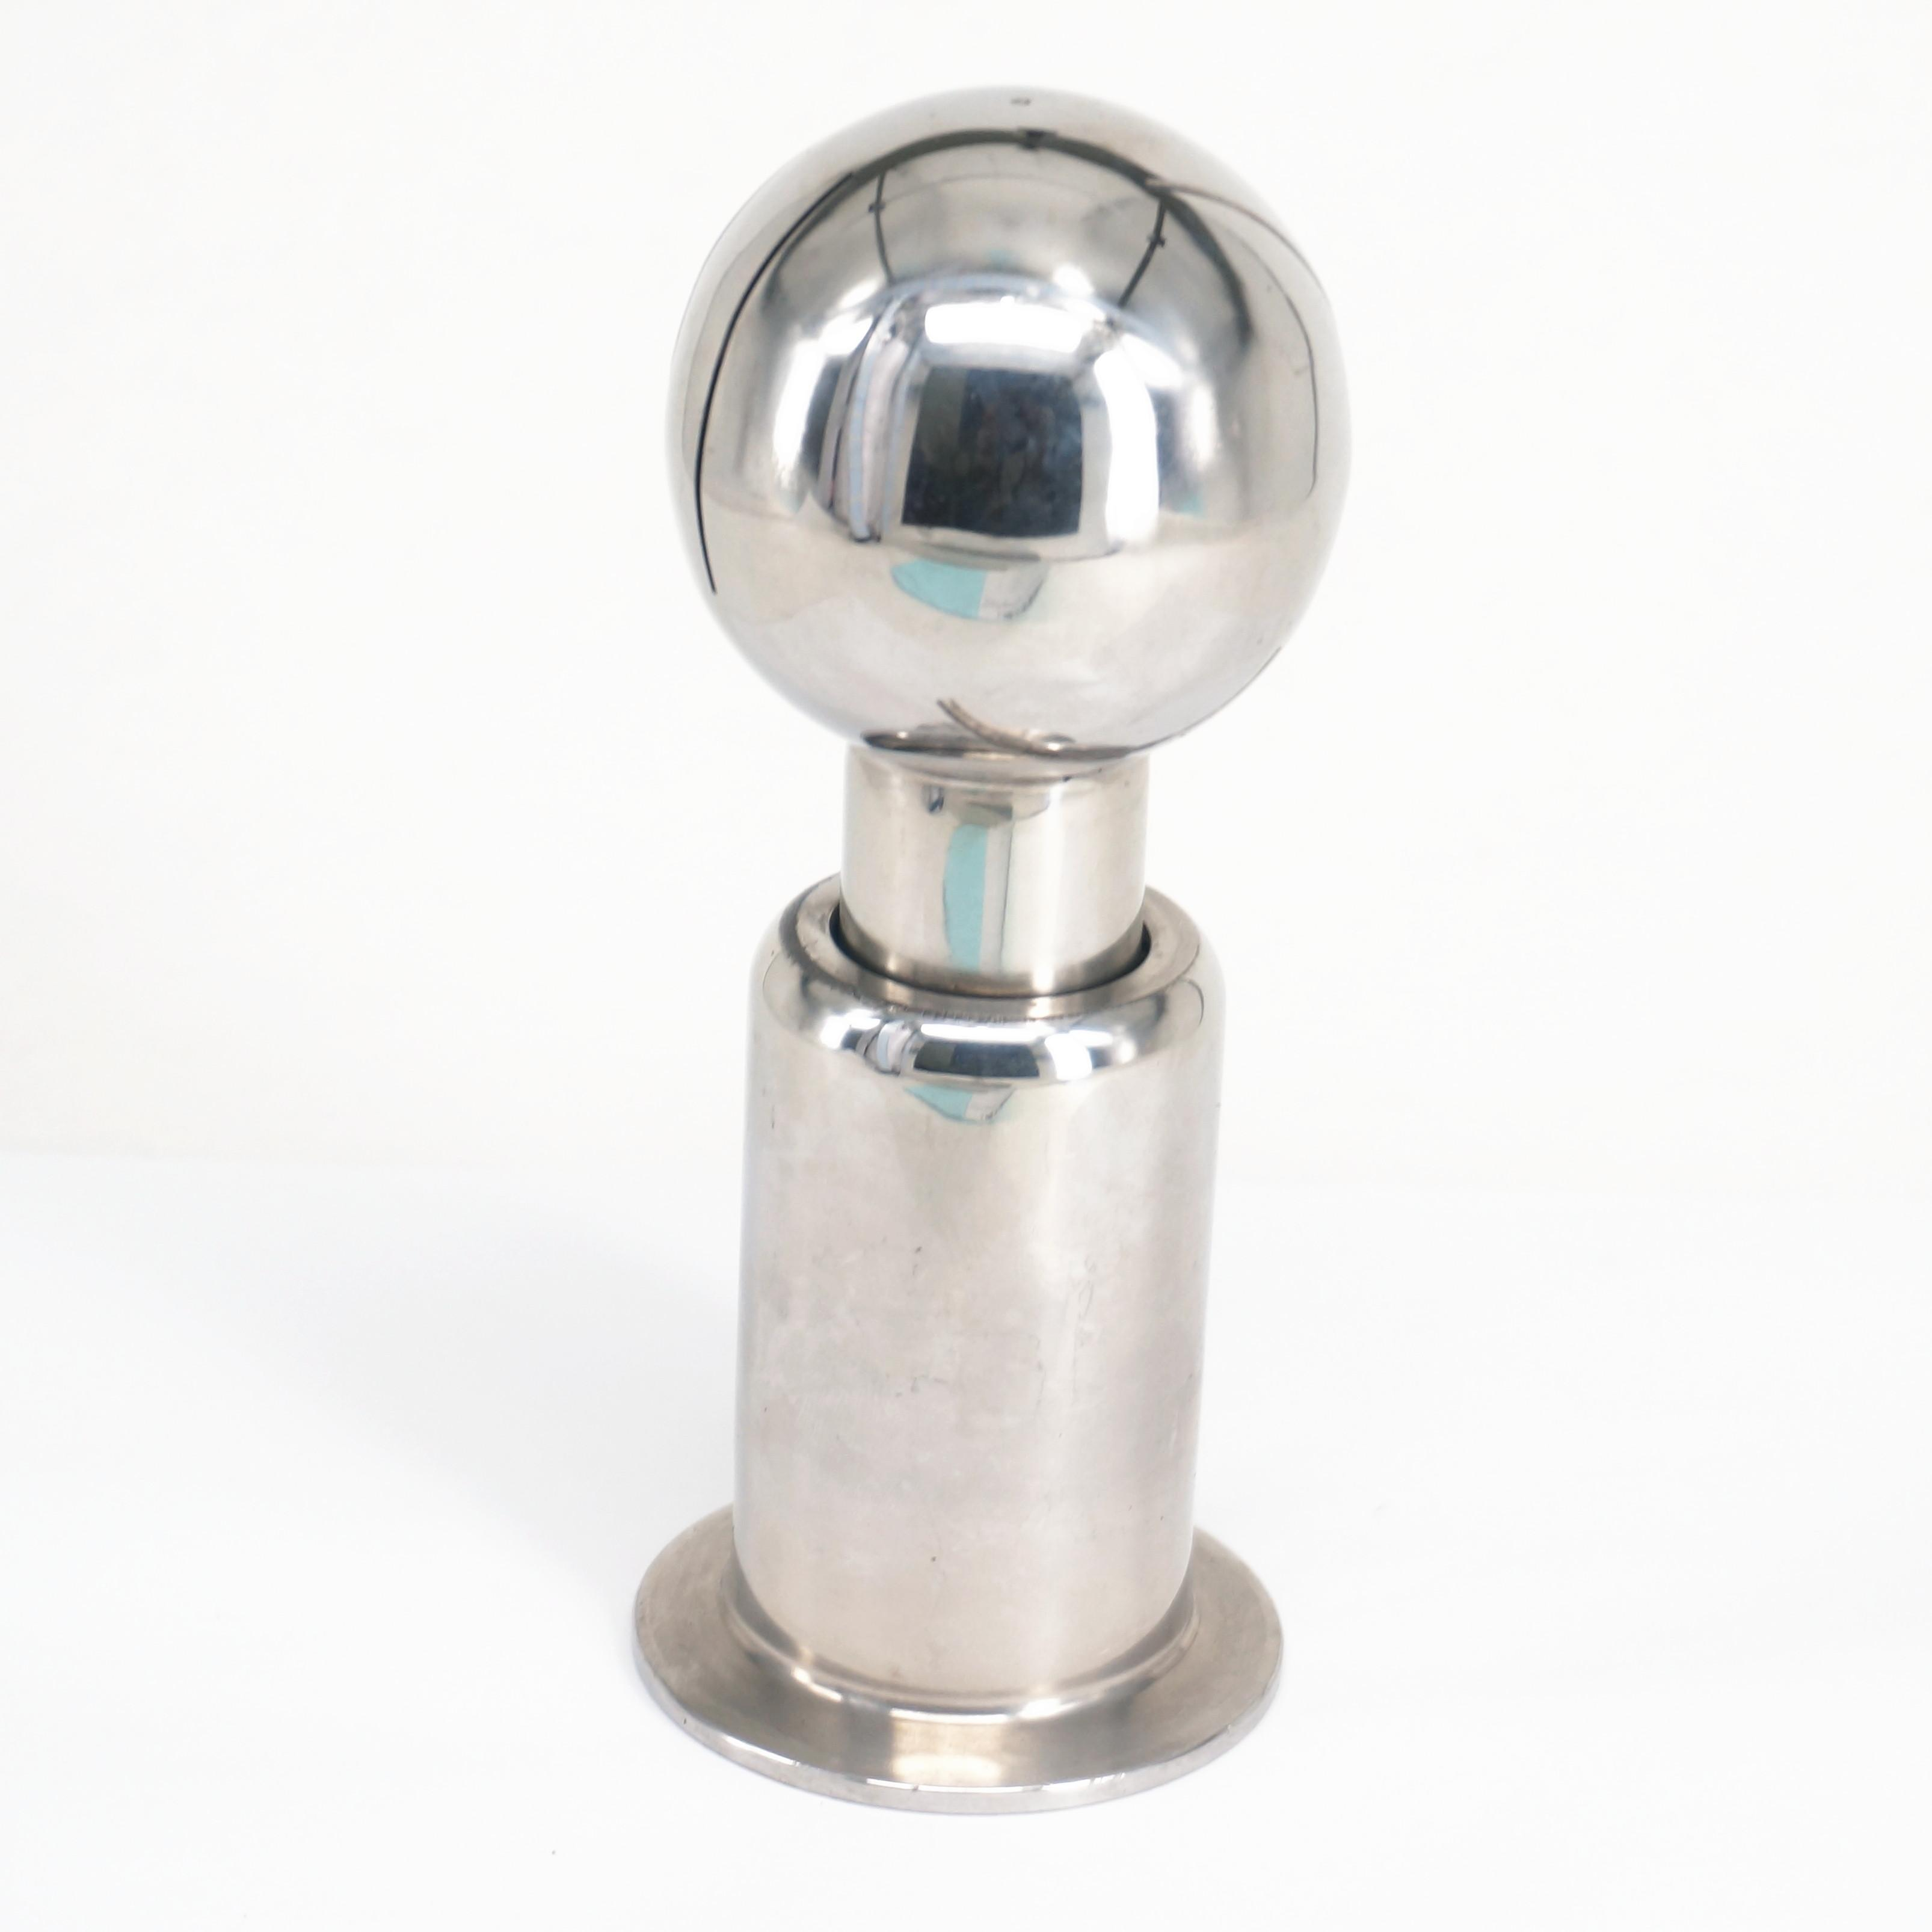 2 Stainless Steel SS304 Rotary Spray Ball 2 Tri Clamp Clamp CIP Tank Cleaning